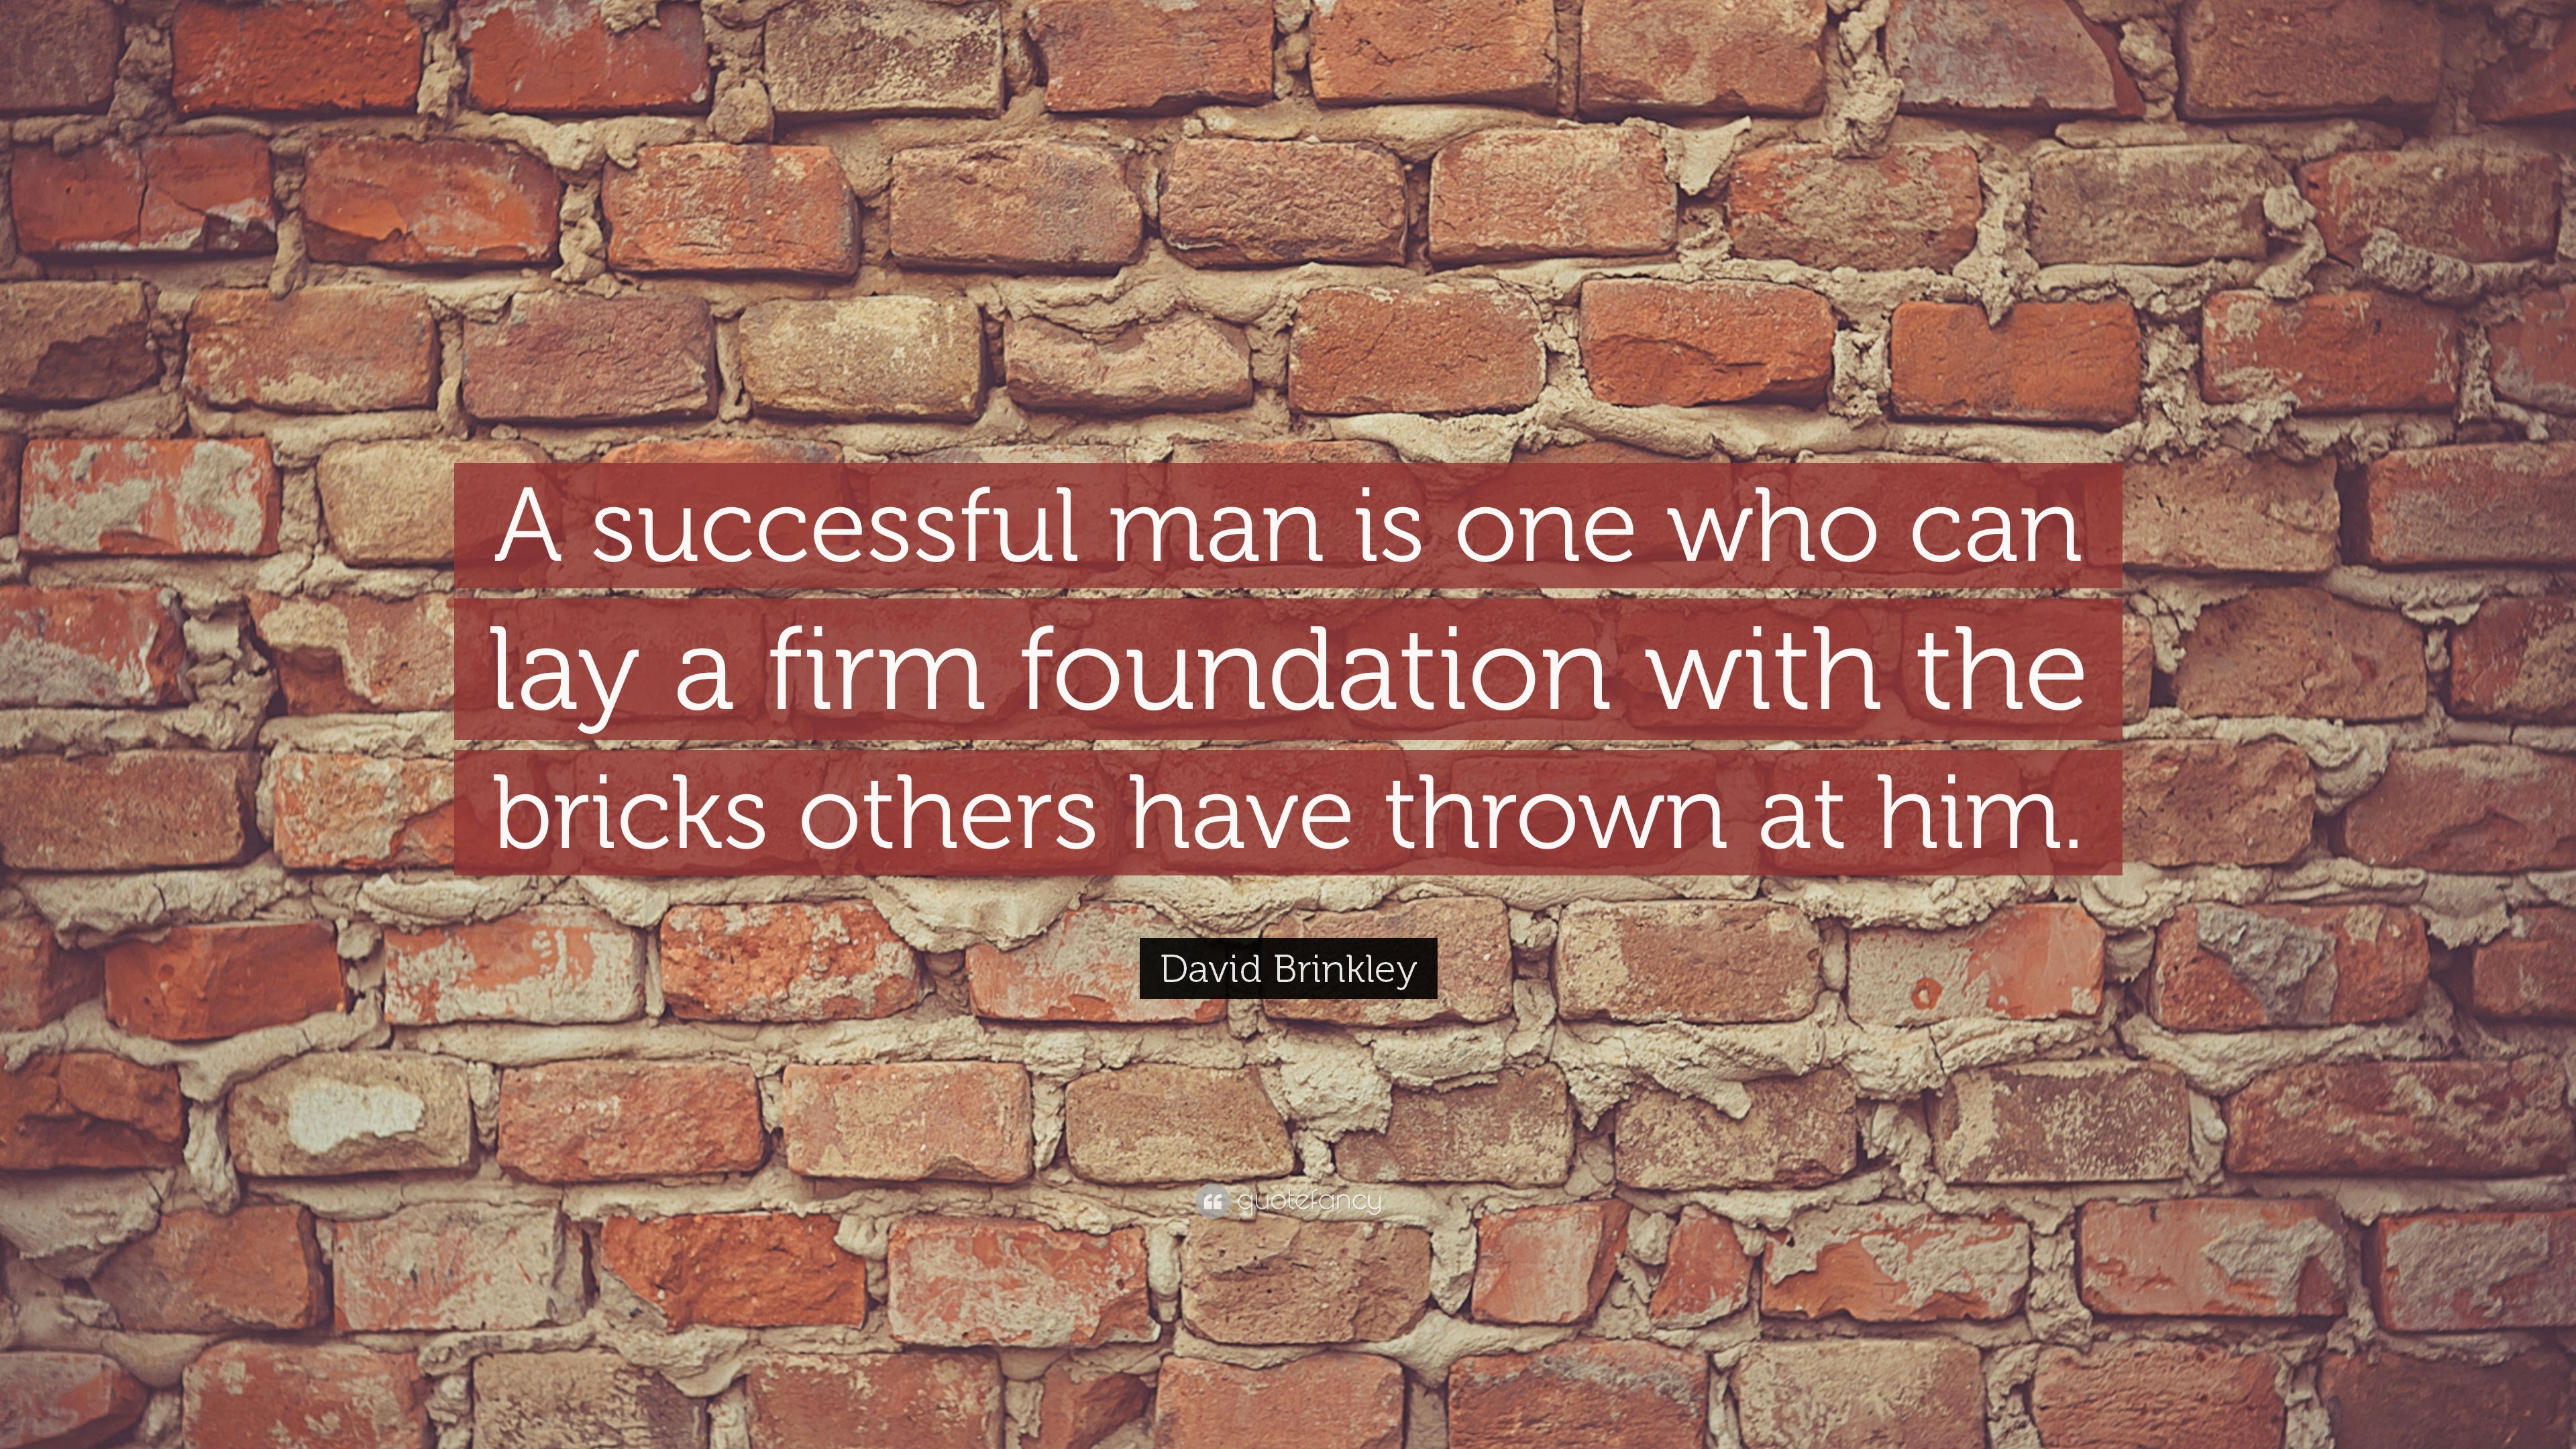 "Kết quả hình ảnh cho ""A successful man is one who can lay a firm foundation with the bricks others have thrown at him."" David Brinkley"